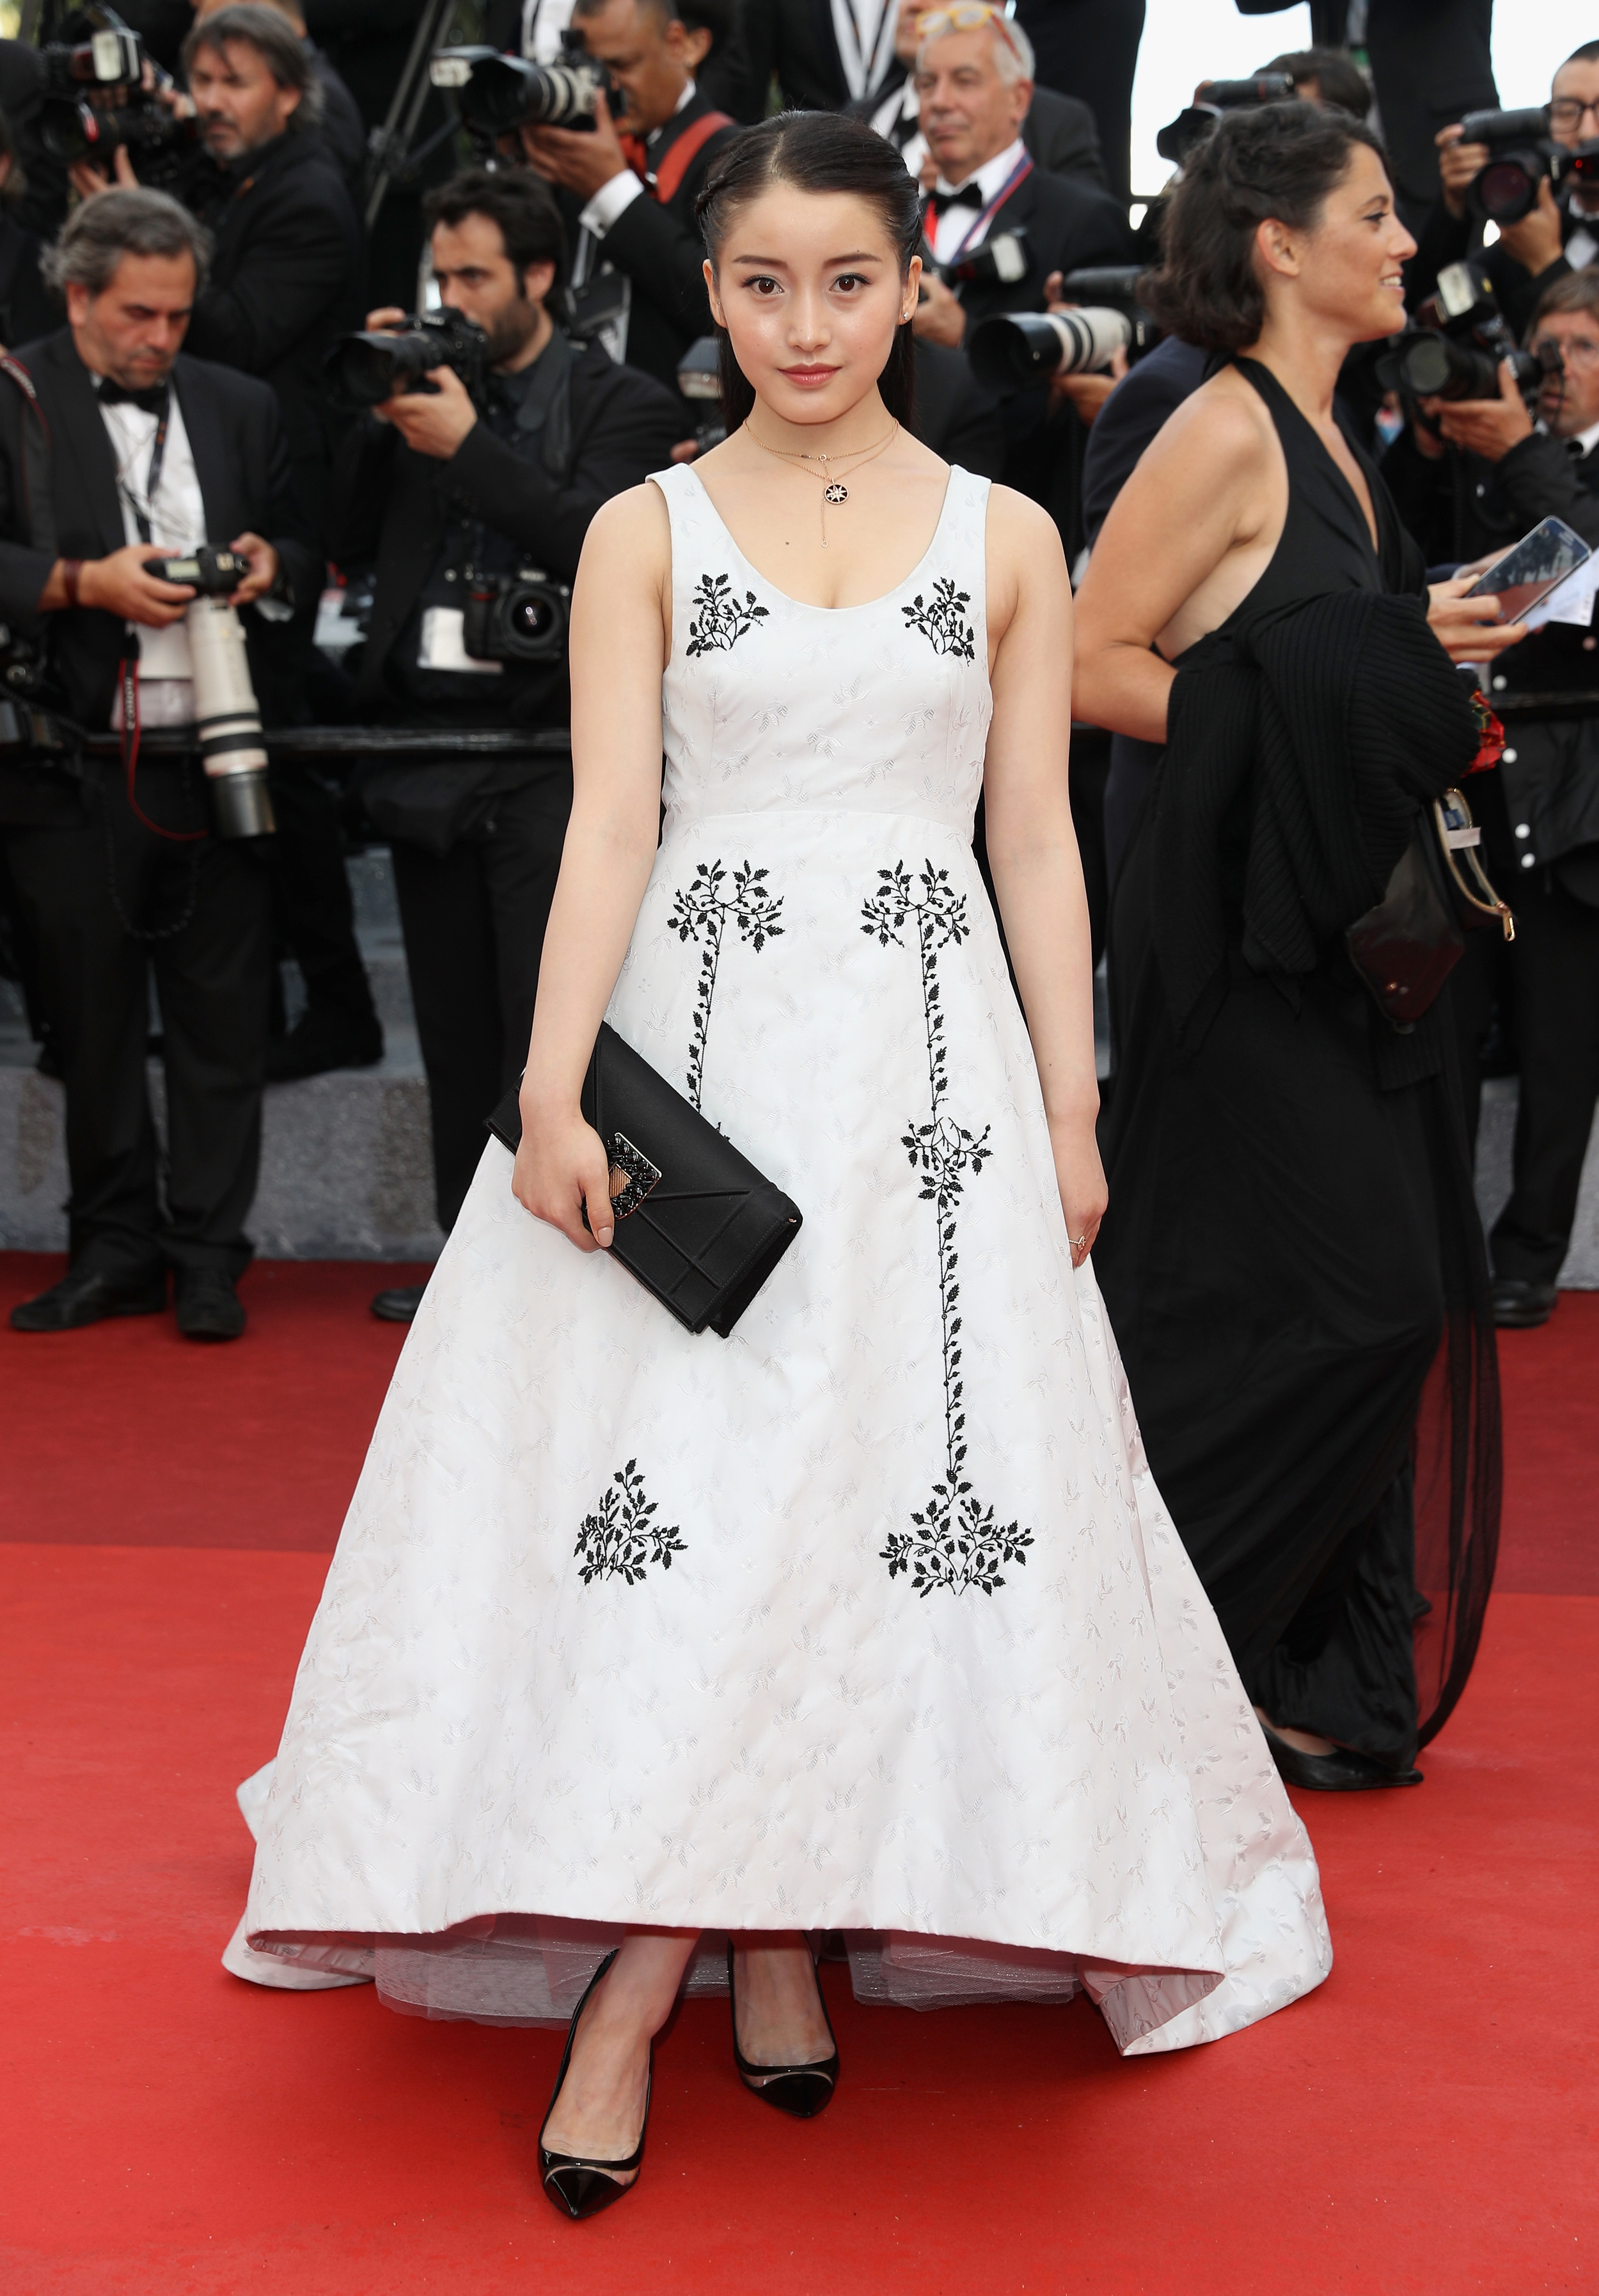 """Yao Xin attends the """"Cafe Society"""" premiere and the Opening Night Gala during the 69th annual Cannes Film Festival at the Palais des Festivals in Dior"""